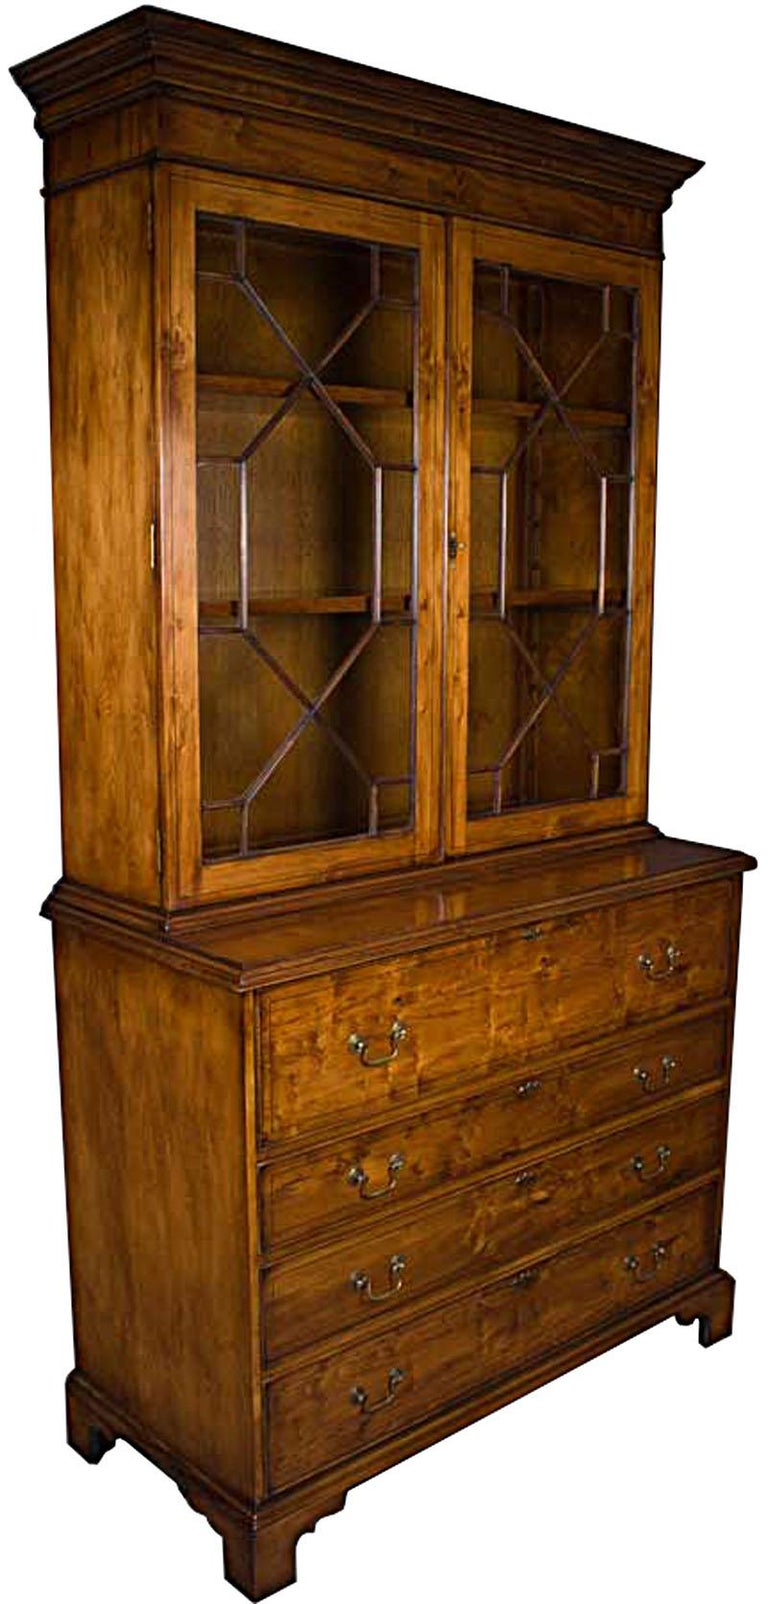 English Yew Wood Secretaire Secretary Bookcase Butlers Desk For Sale 4